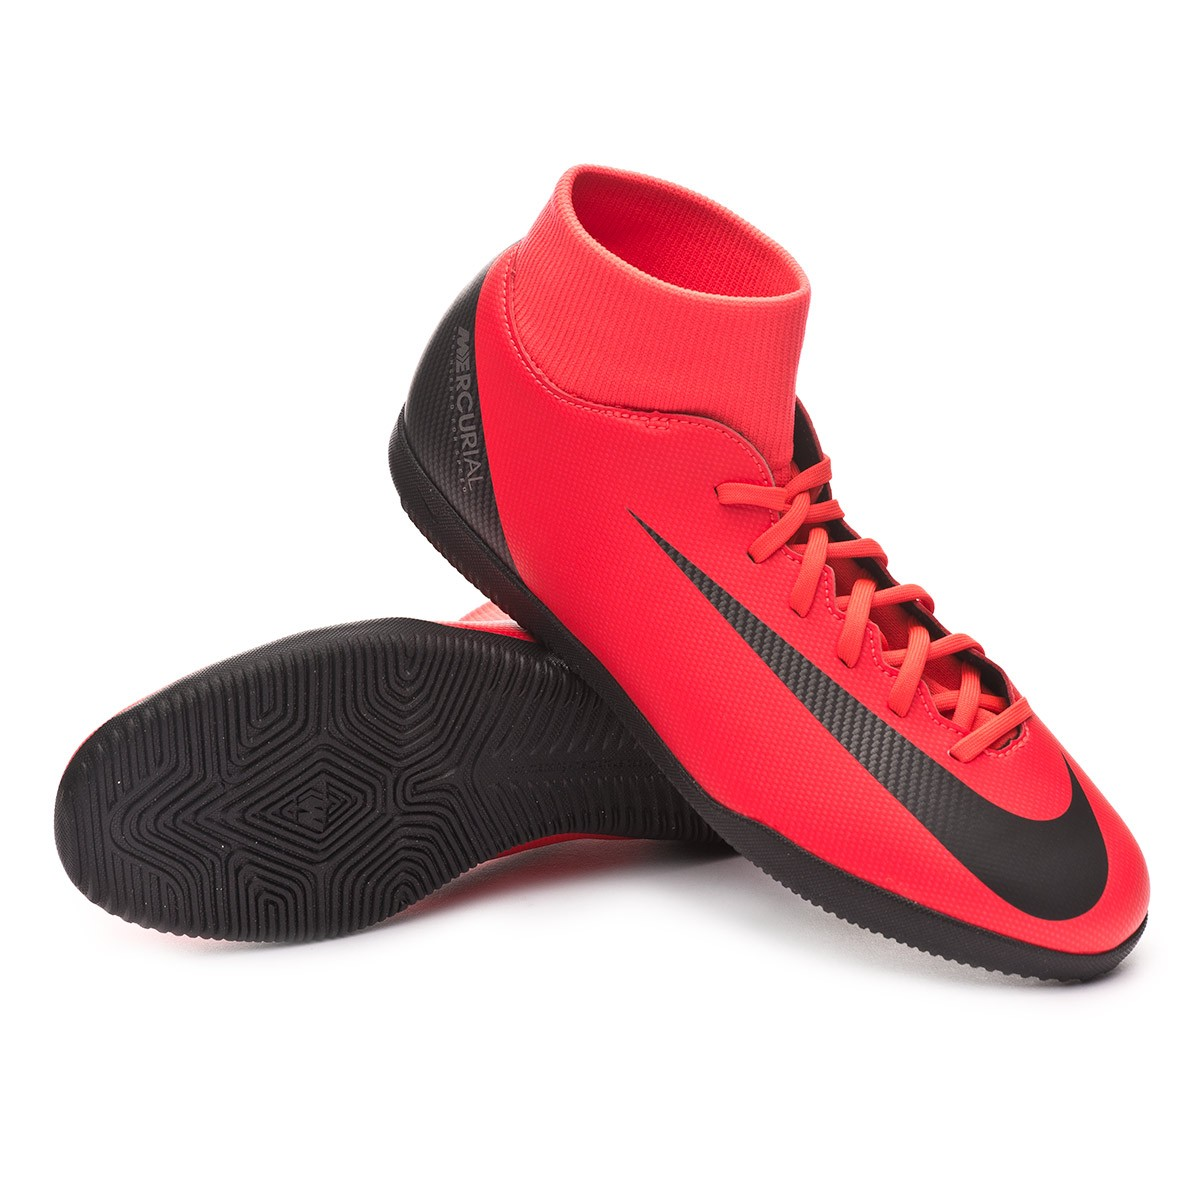 Zapatilla Mercurial SuperflyX VI Club CR7 IC Bright crimson Black Chrome